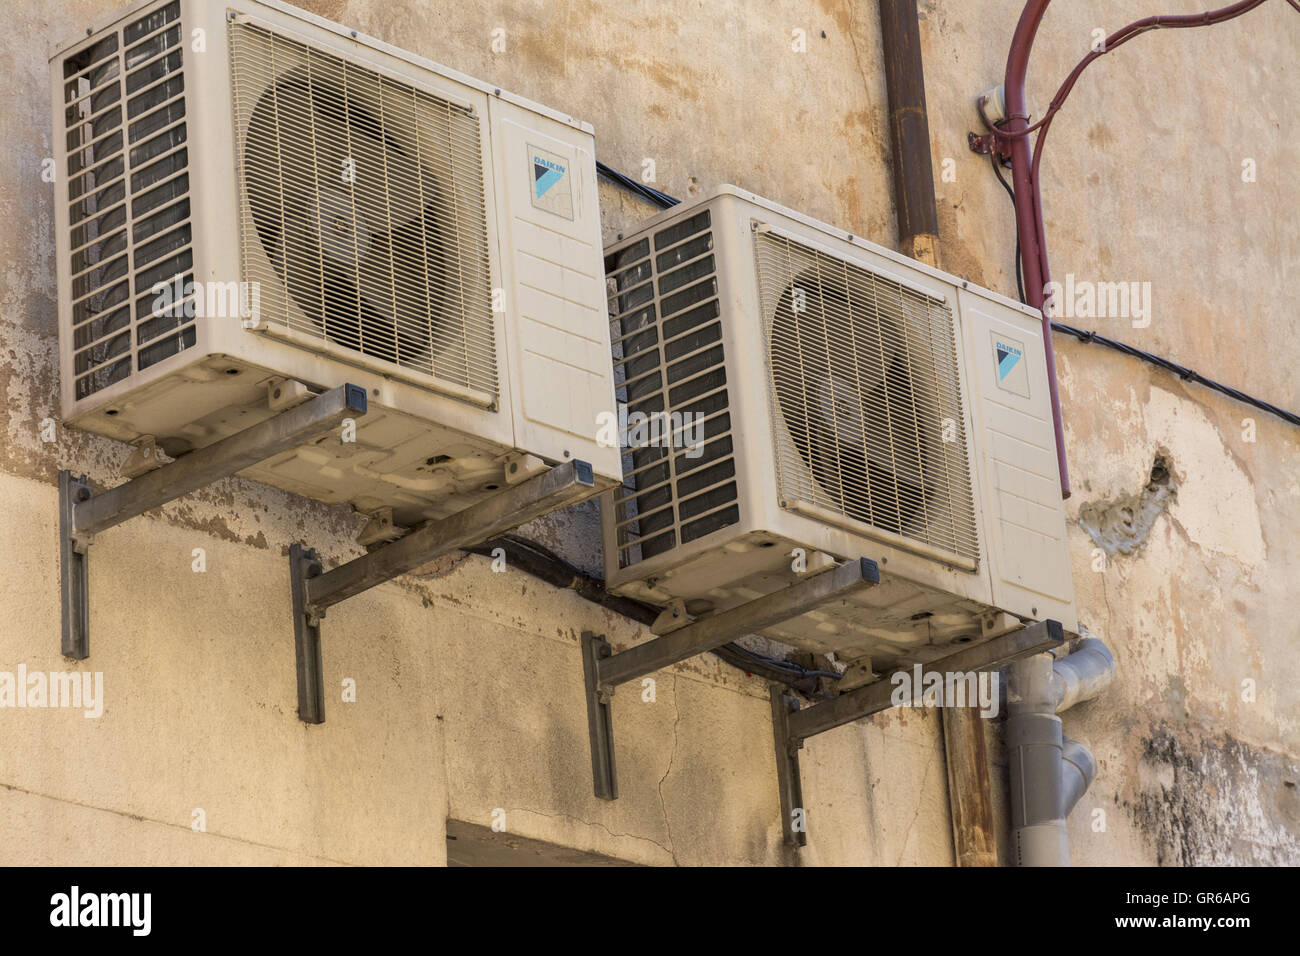 Air Conditioning - Stock Image